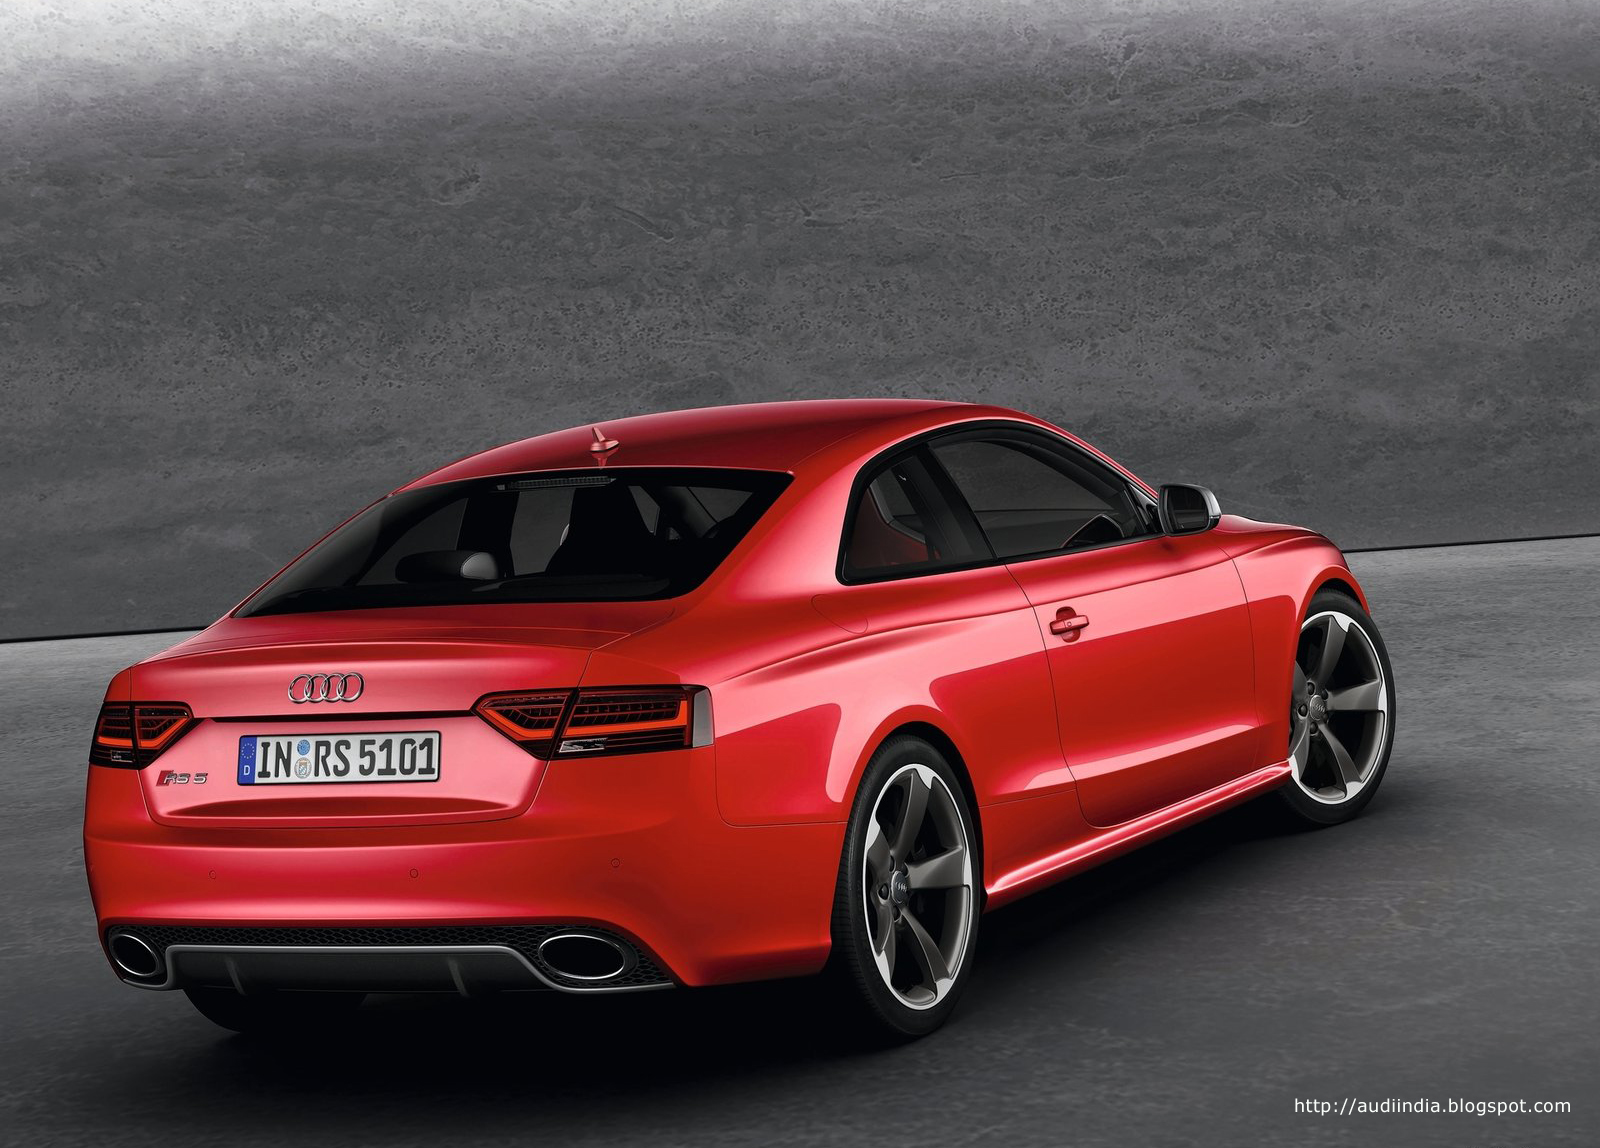 2013 audi rs5 technical specifications images. Black Bedroom Furniture Sets. Home Design Ideas